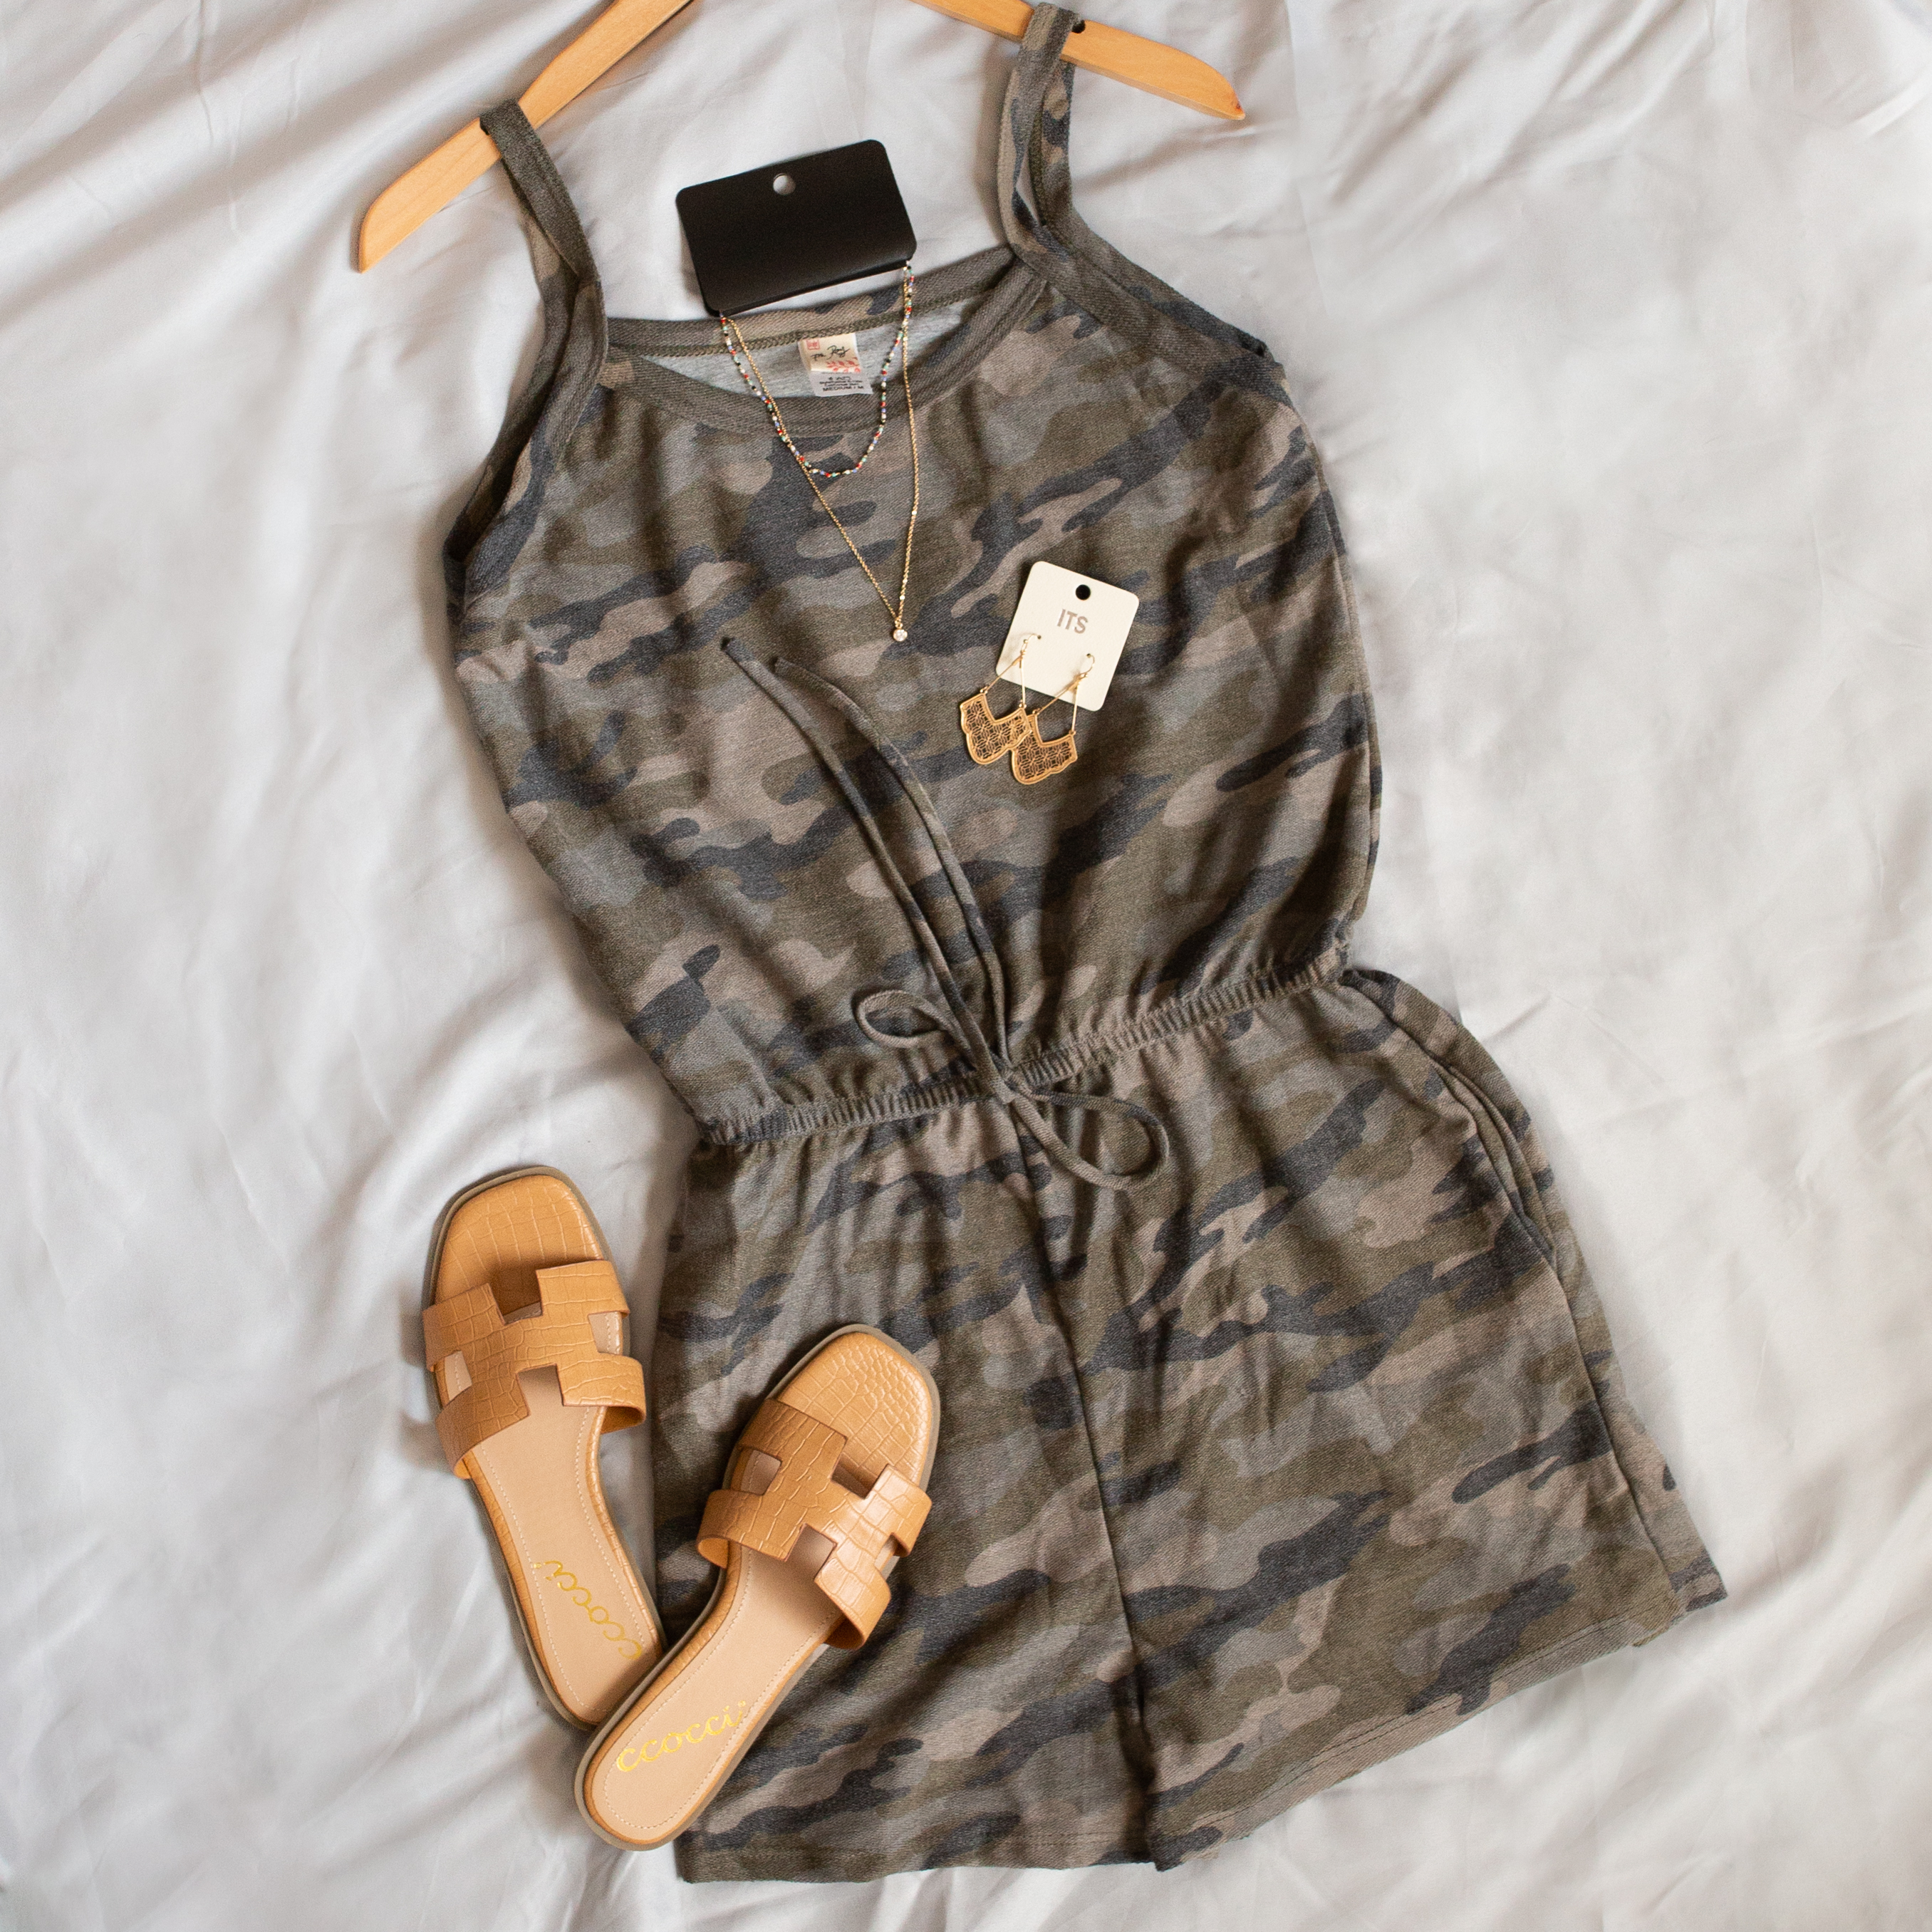 Sage Camo Print Sleeveless Romper with Waist Tie and Pockets